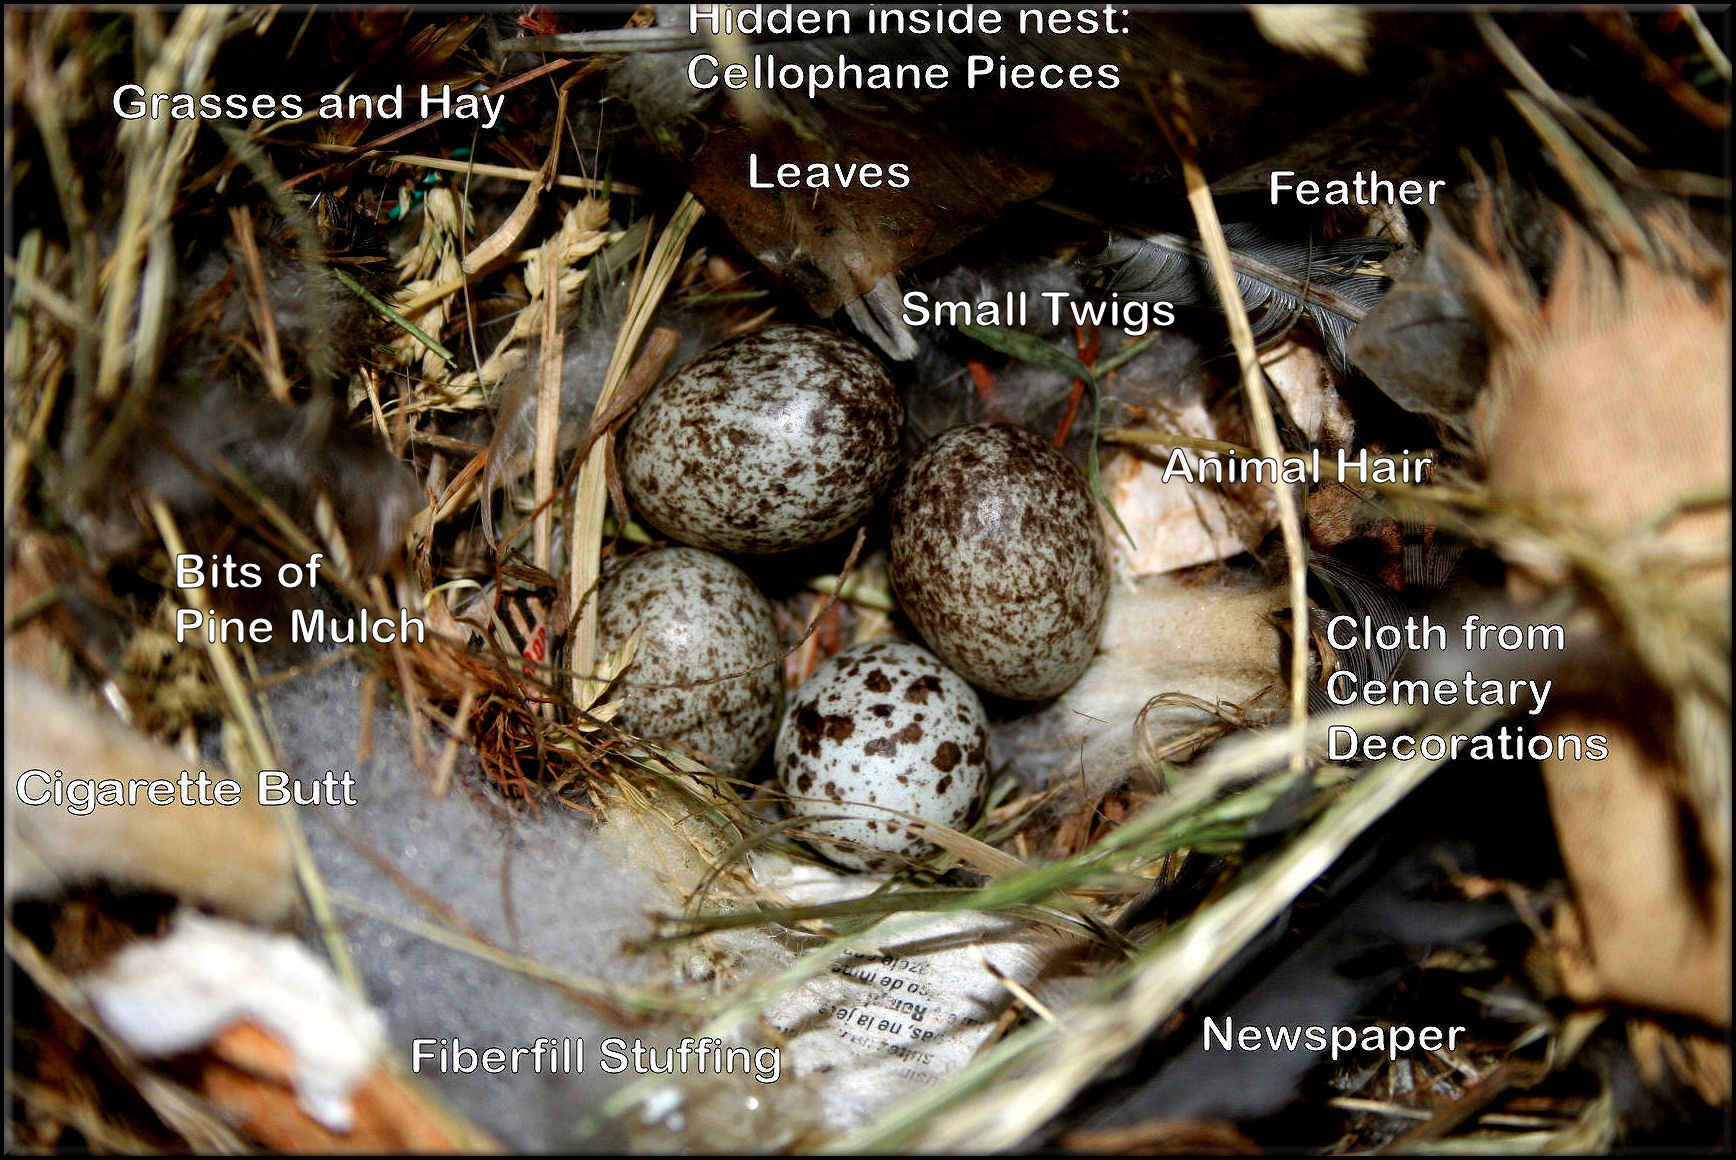 House Sparrow Nest Pictures You id House Sparrow Nests